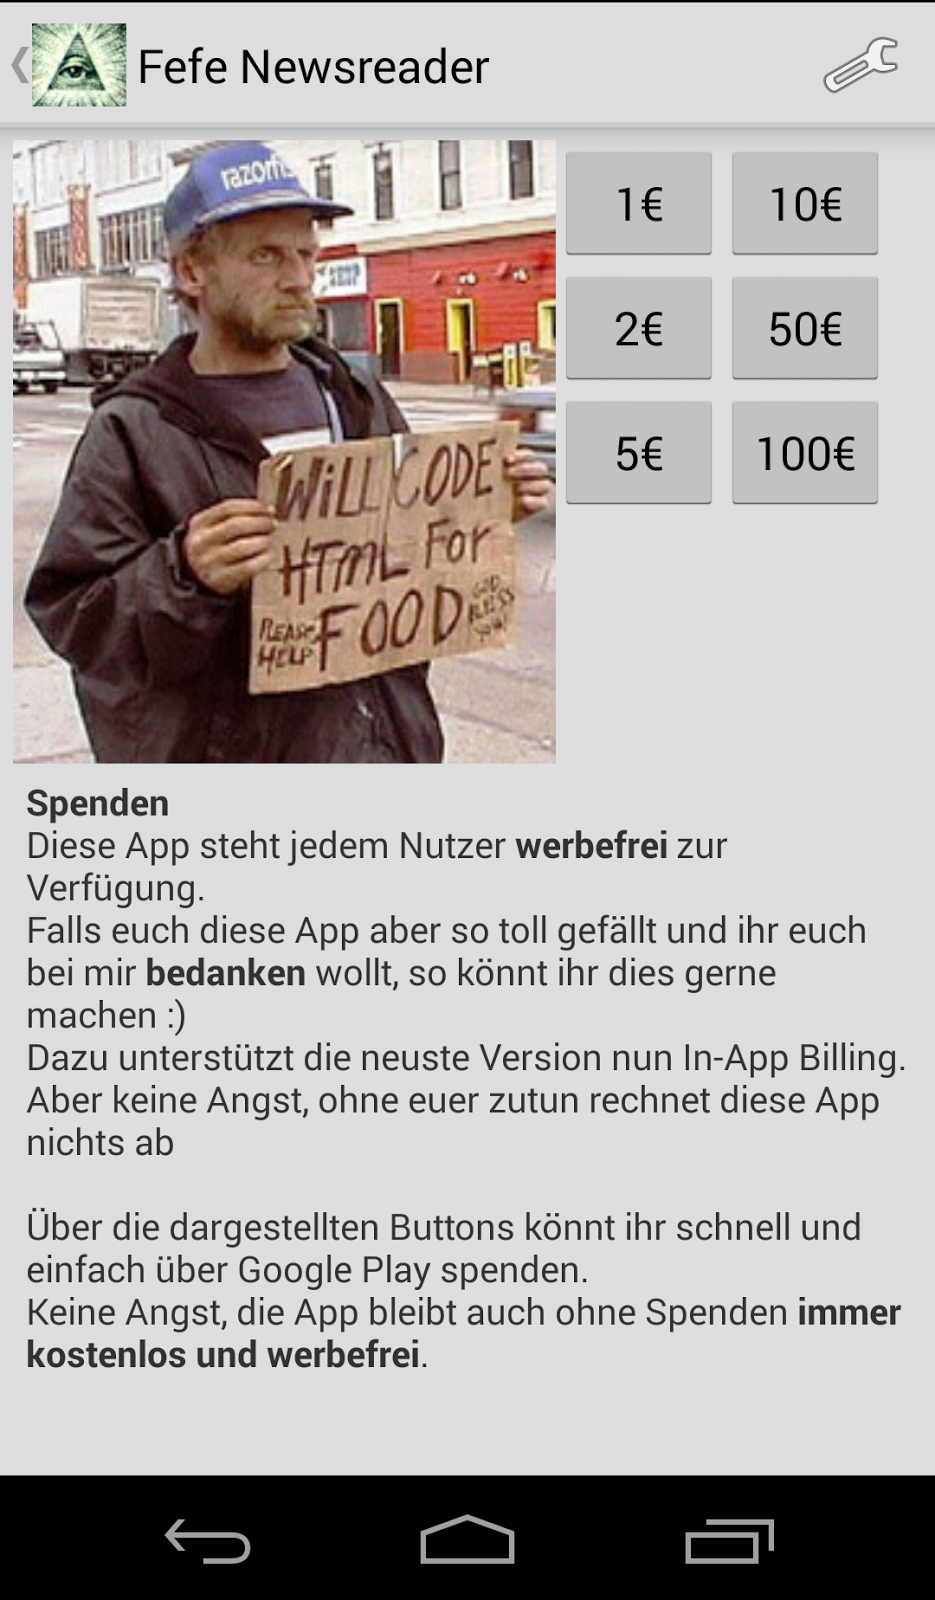 android will code for food